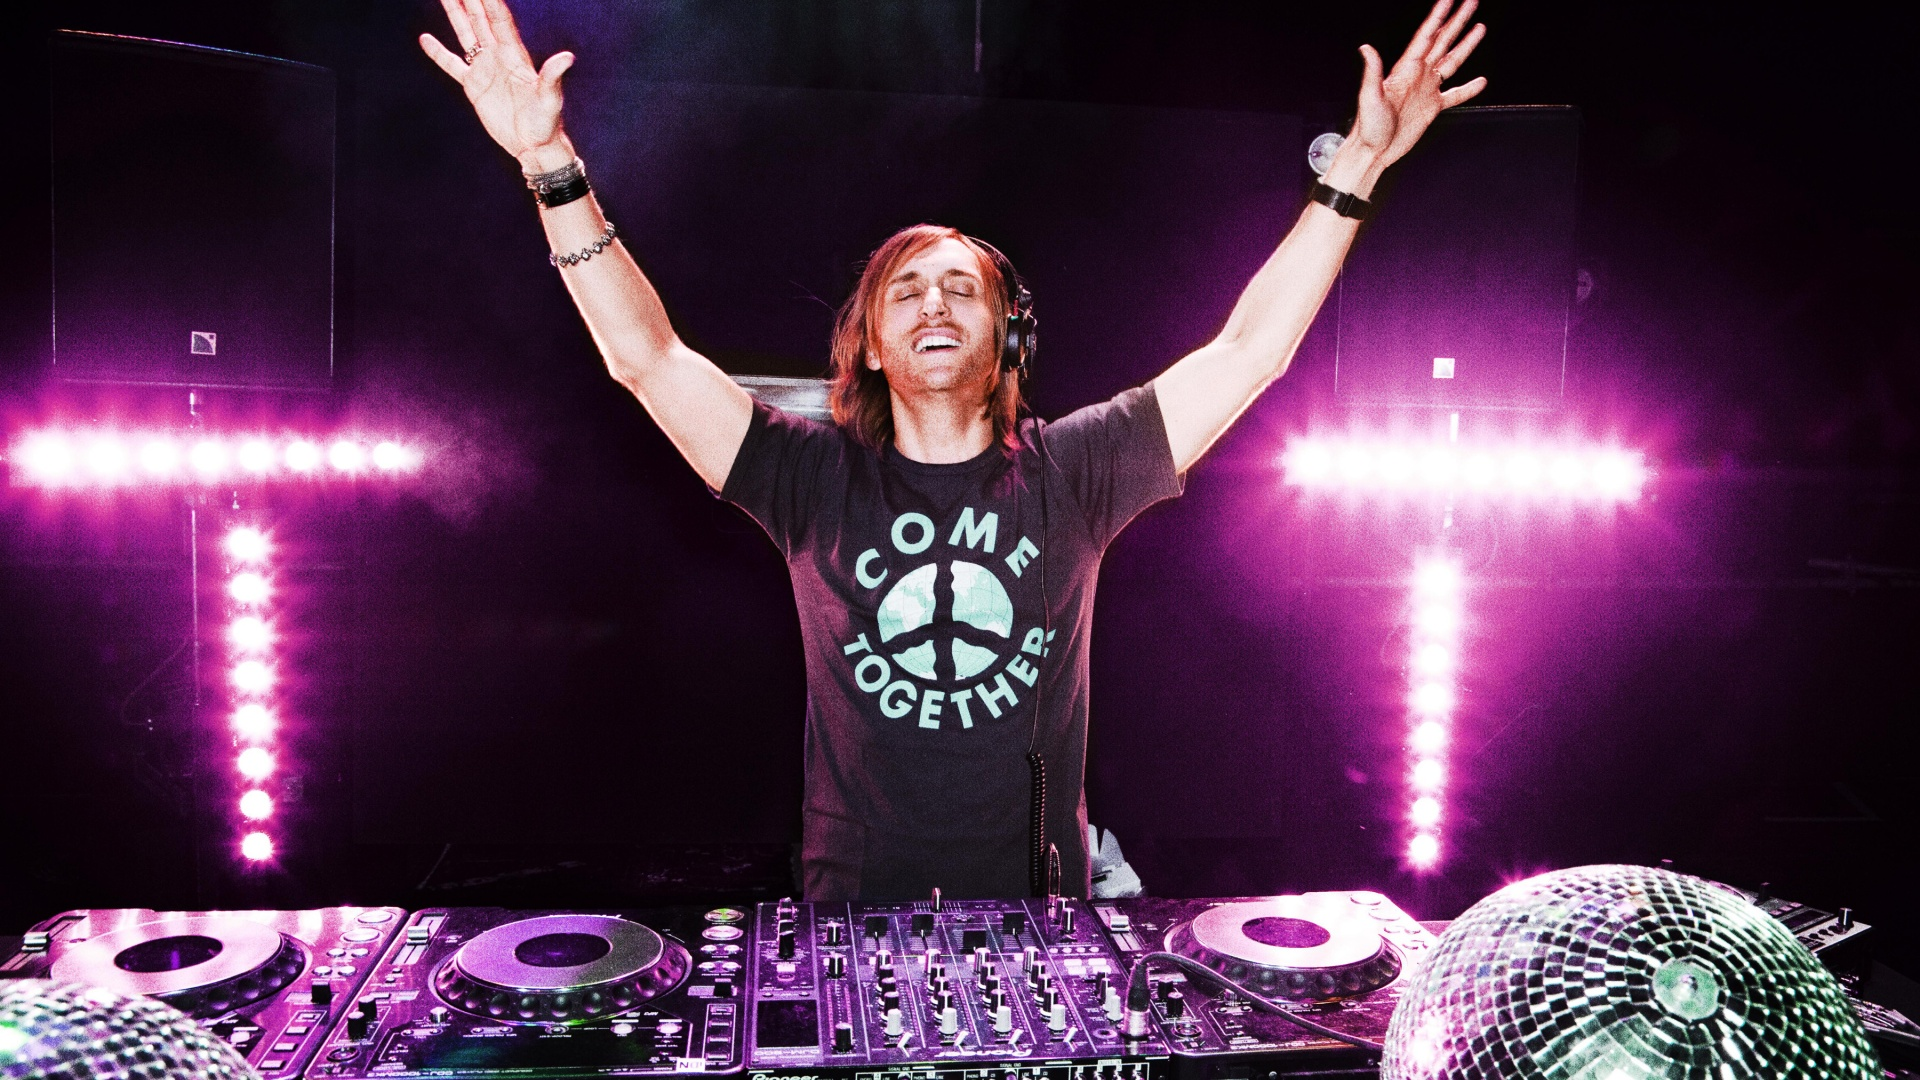 When Love Takes Over av David Guetta